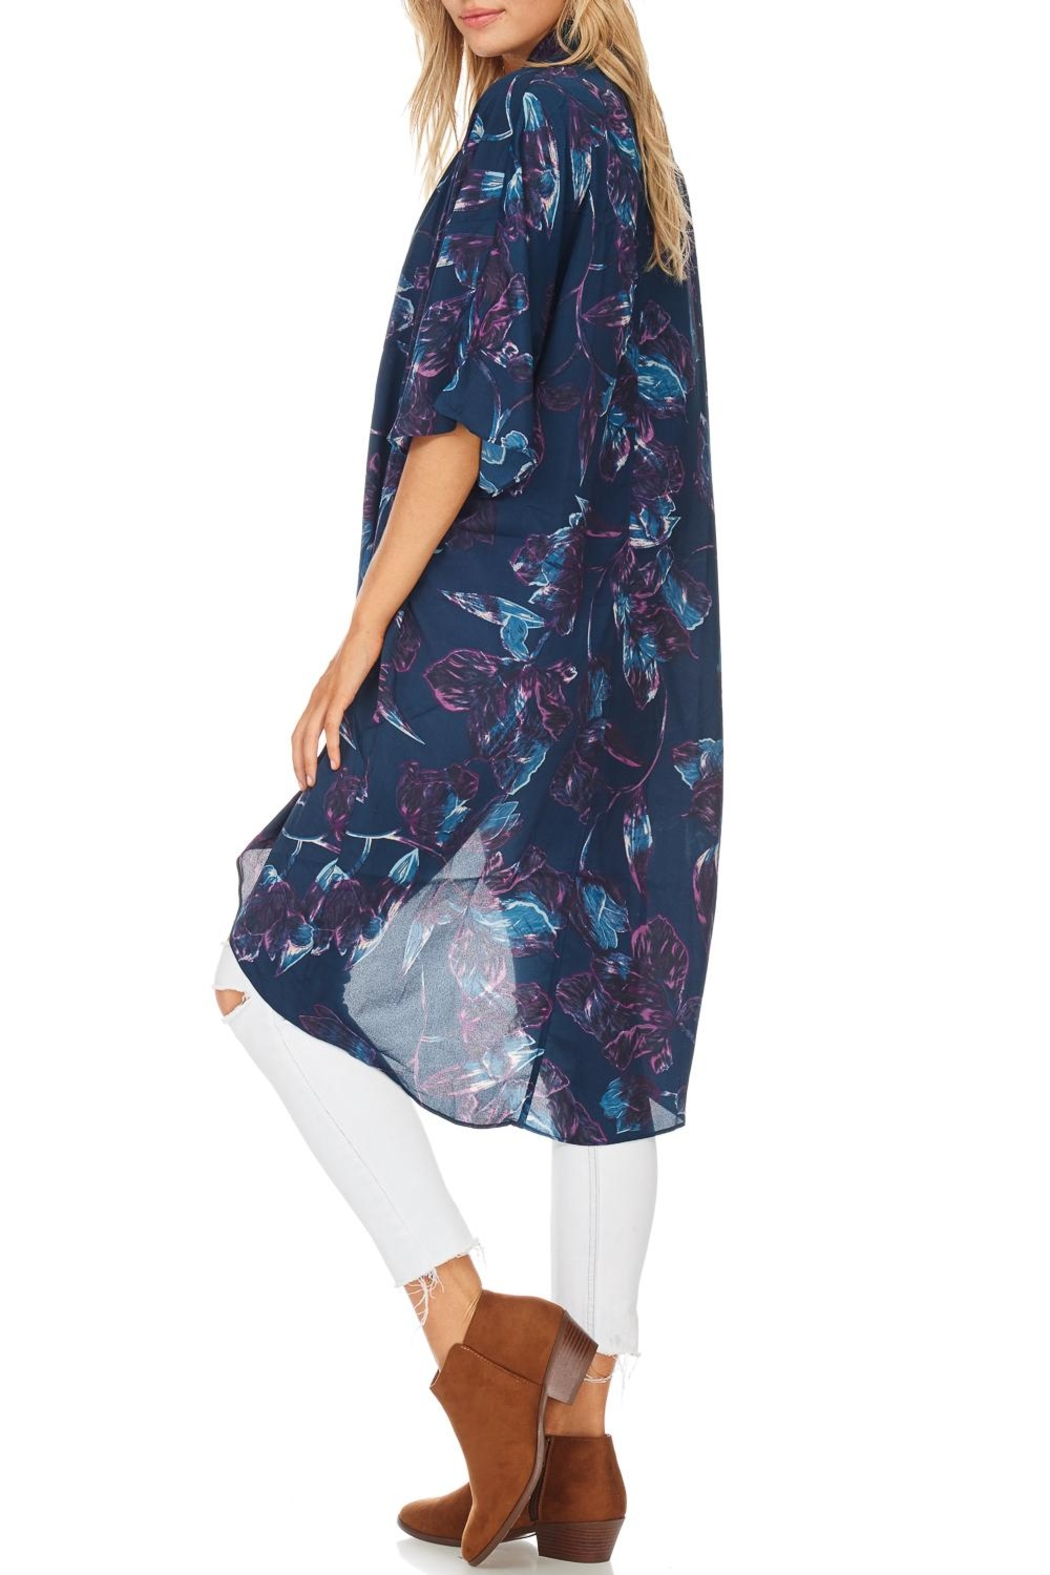 Everly Lightweight Teal Kimono - Back Cropped Image